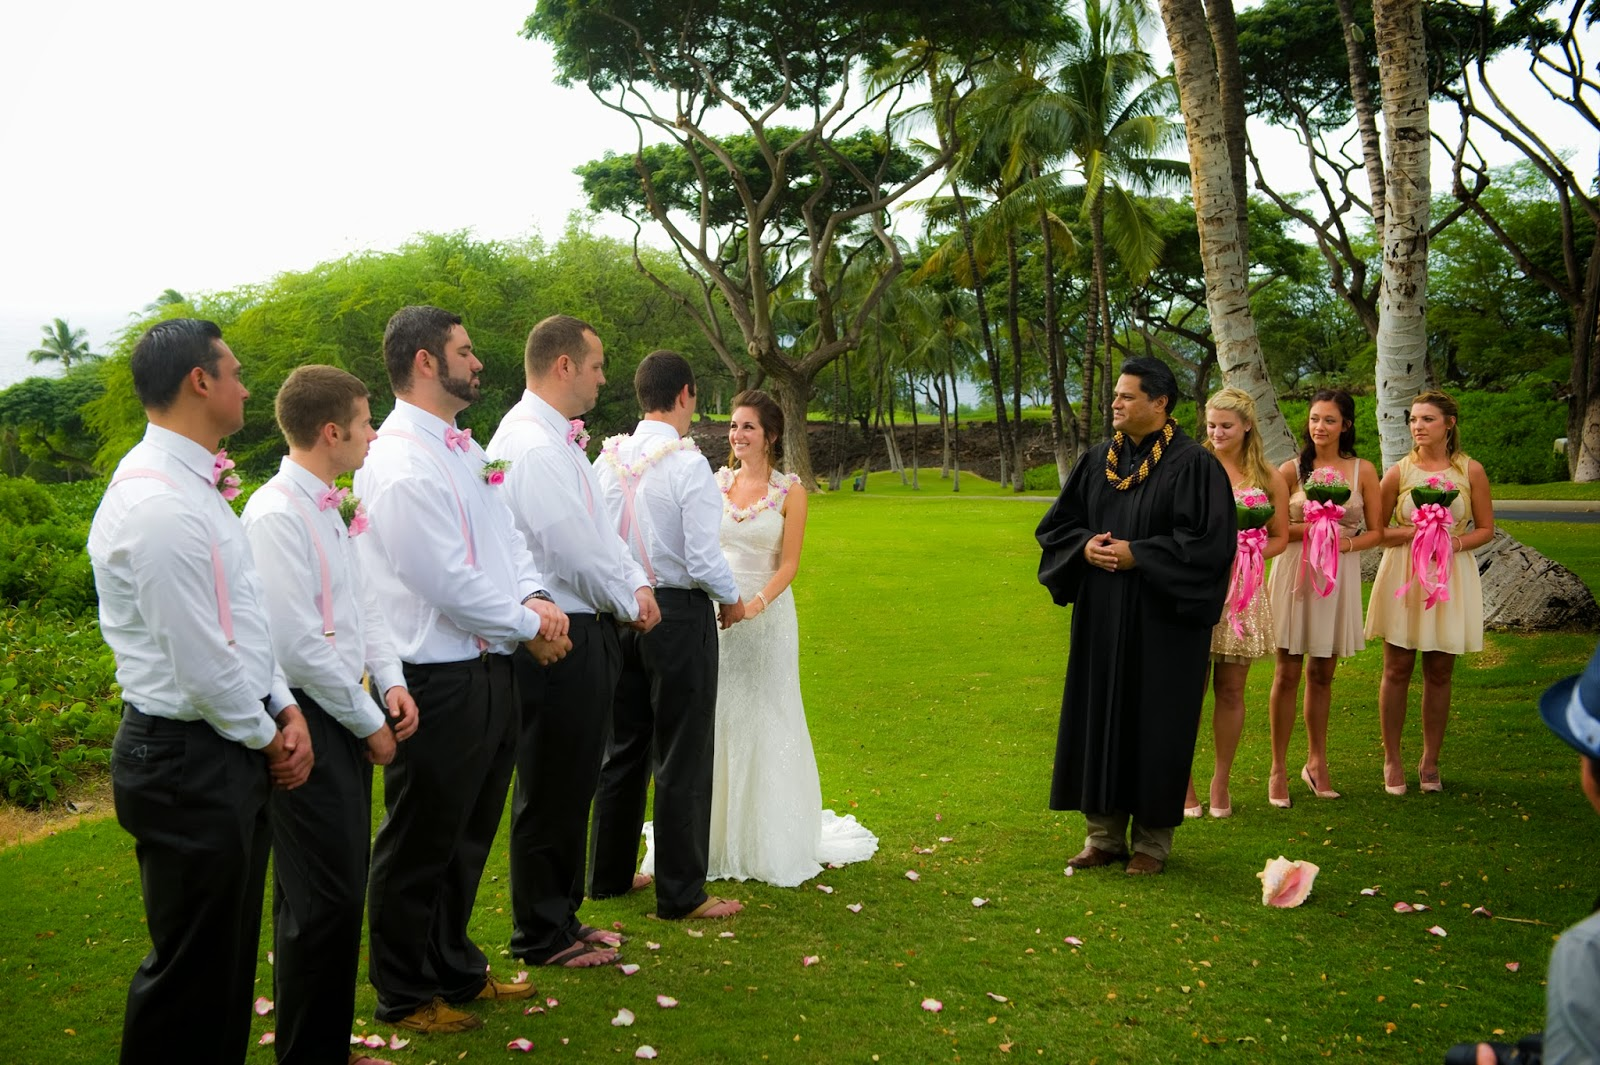 maui wedding planners, maui wedding photographers, maui weddings, hawaii wedding planners